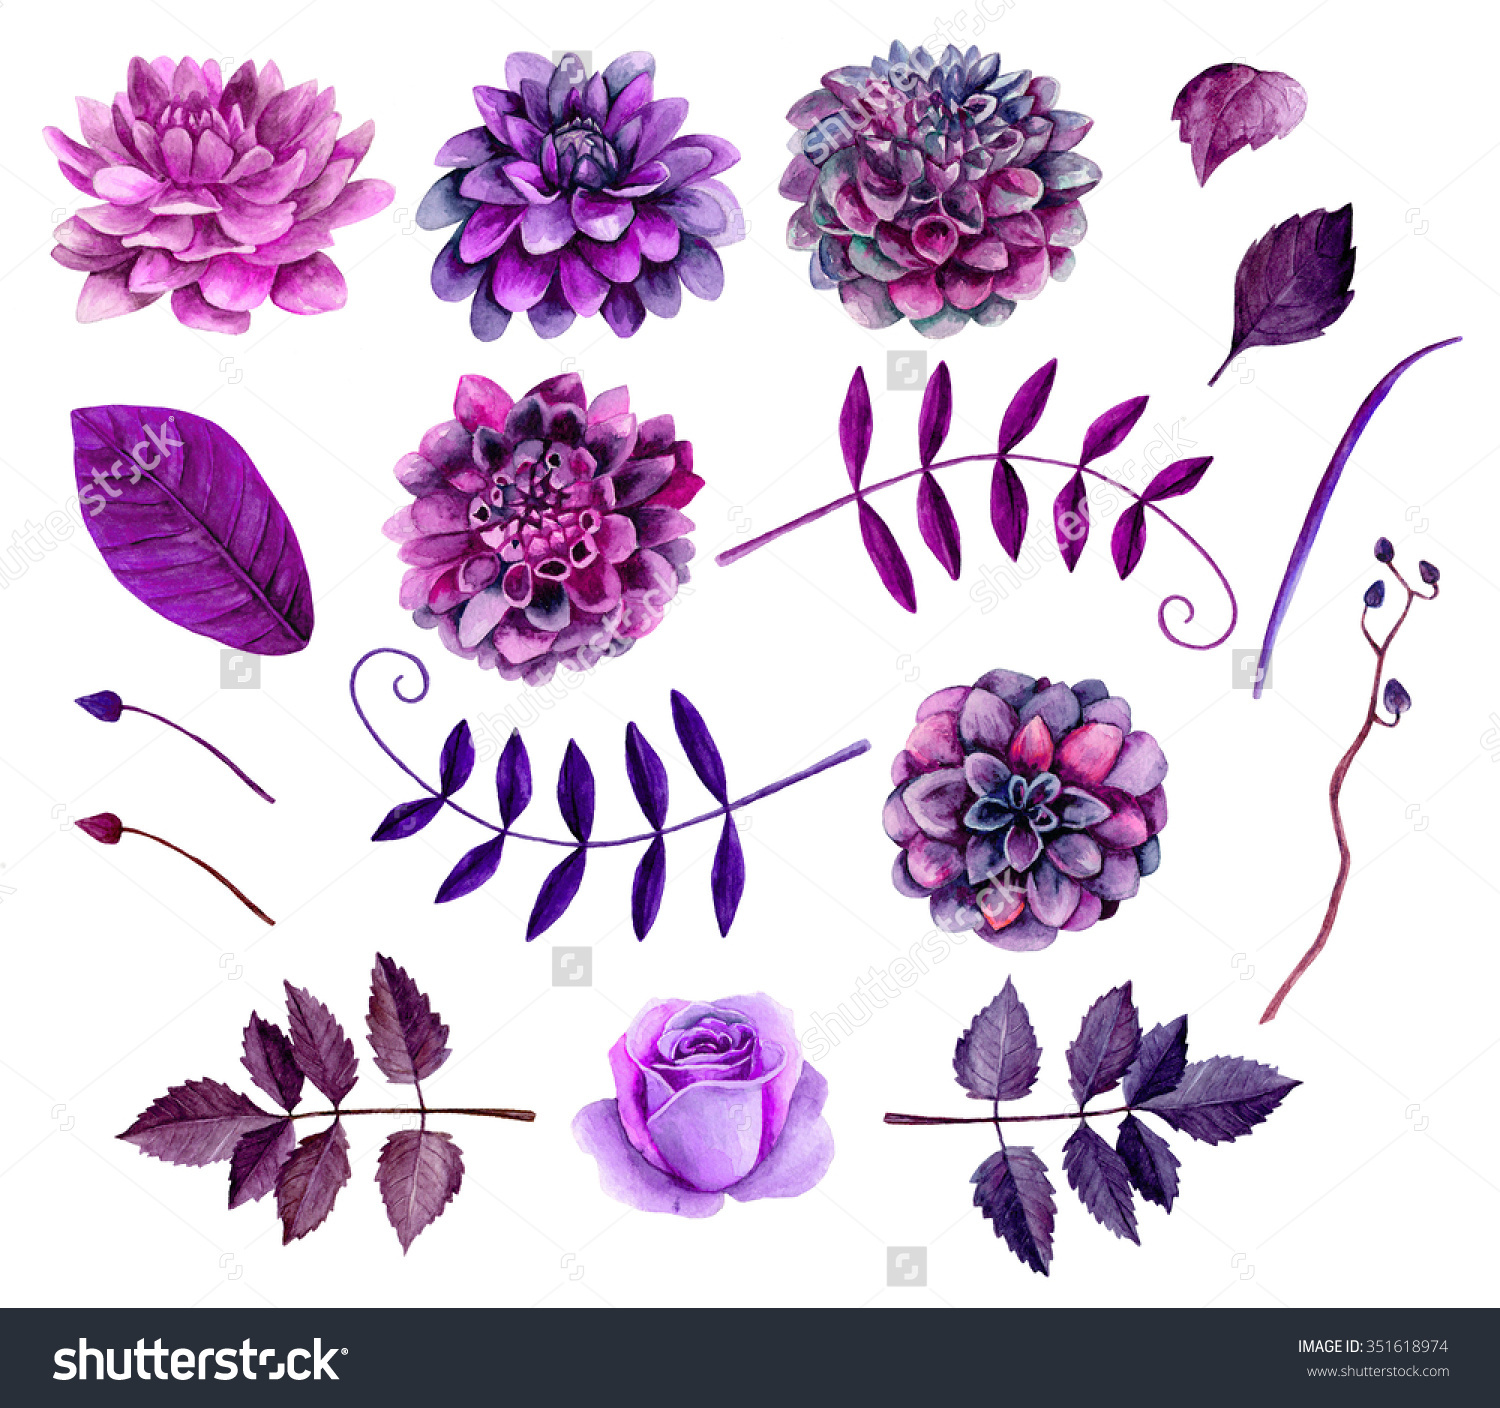 Appealing purple flowers vector photographs